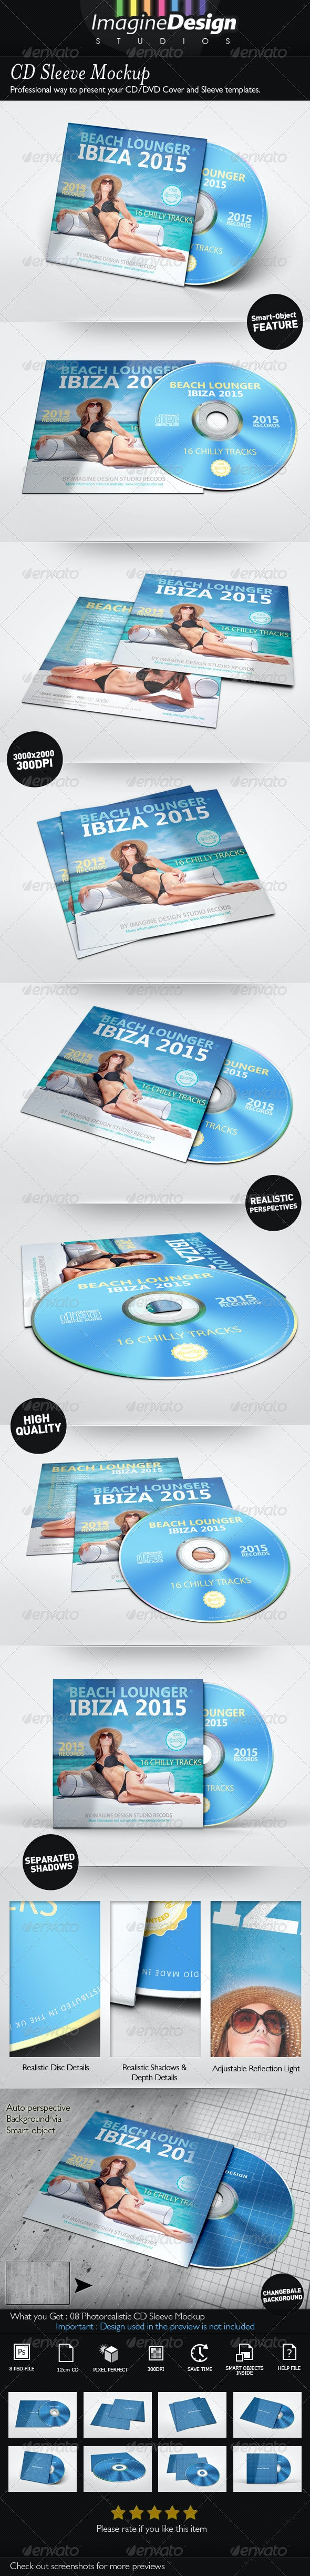 CD Sleeve Mockup - Discs Packaging